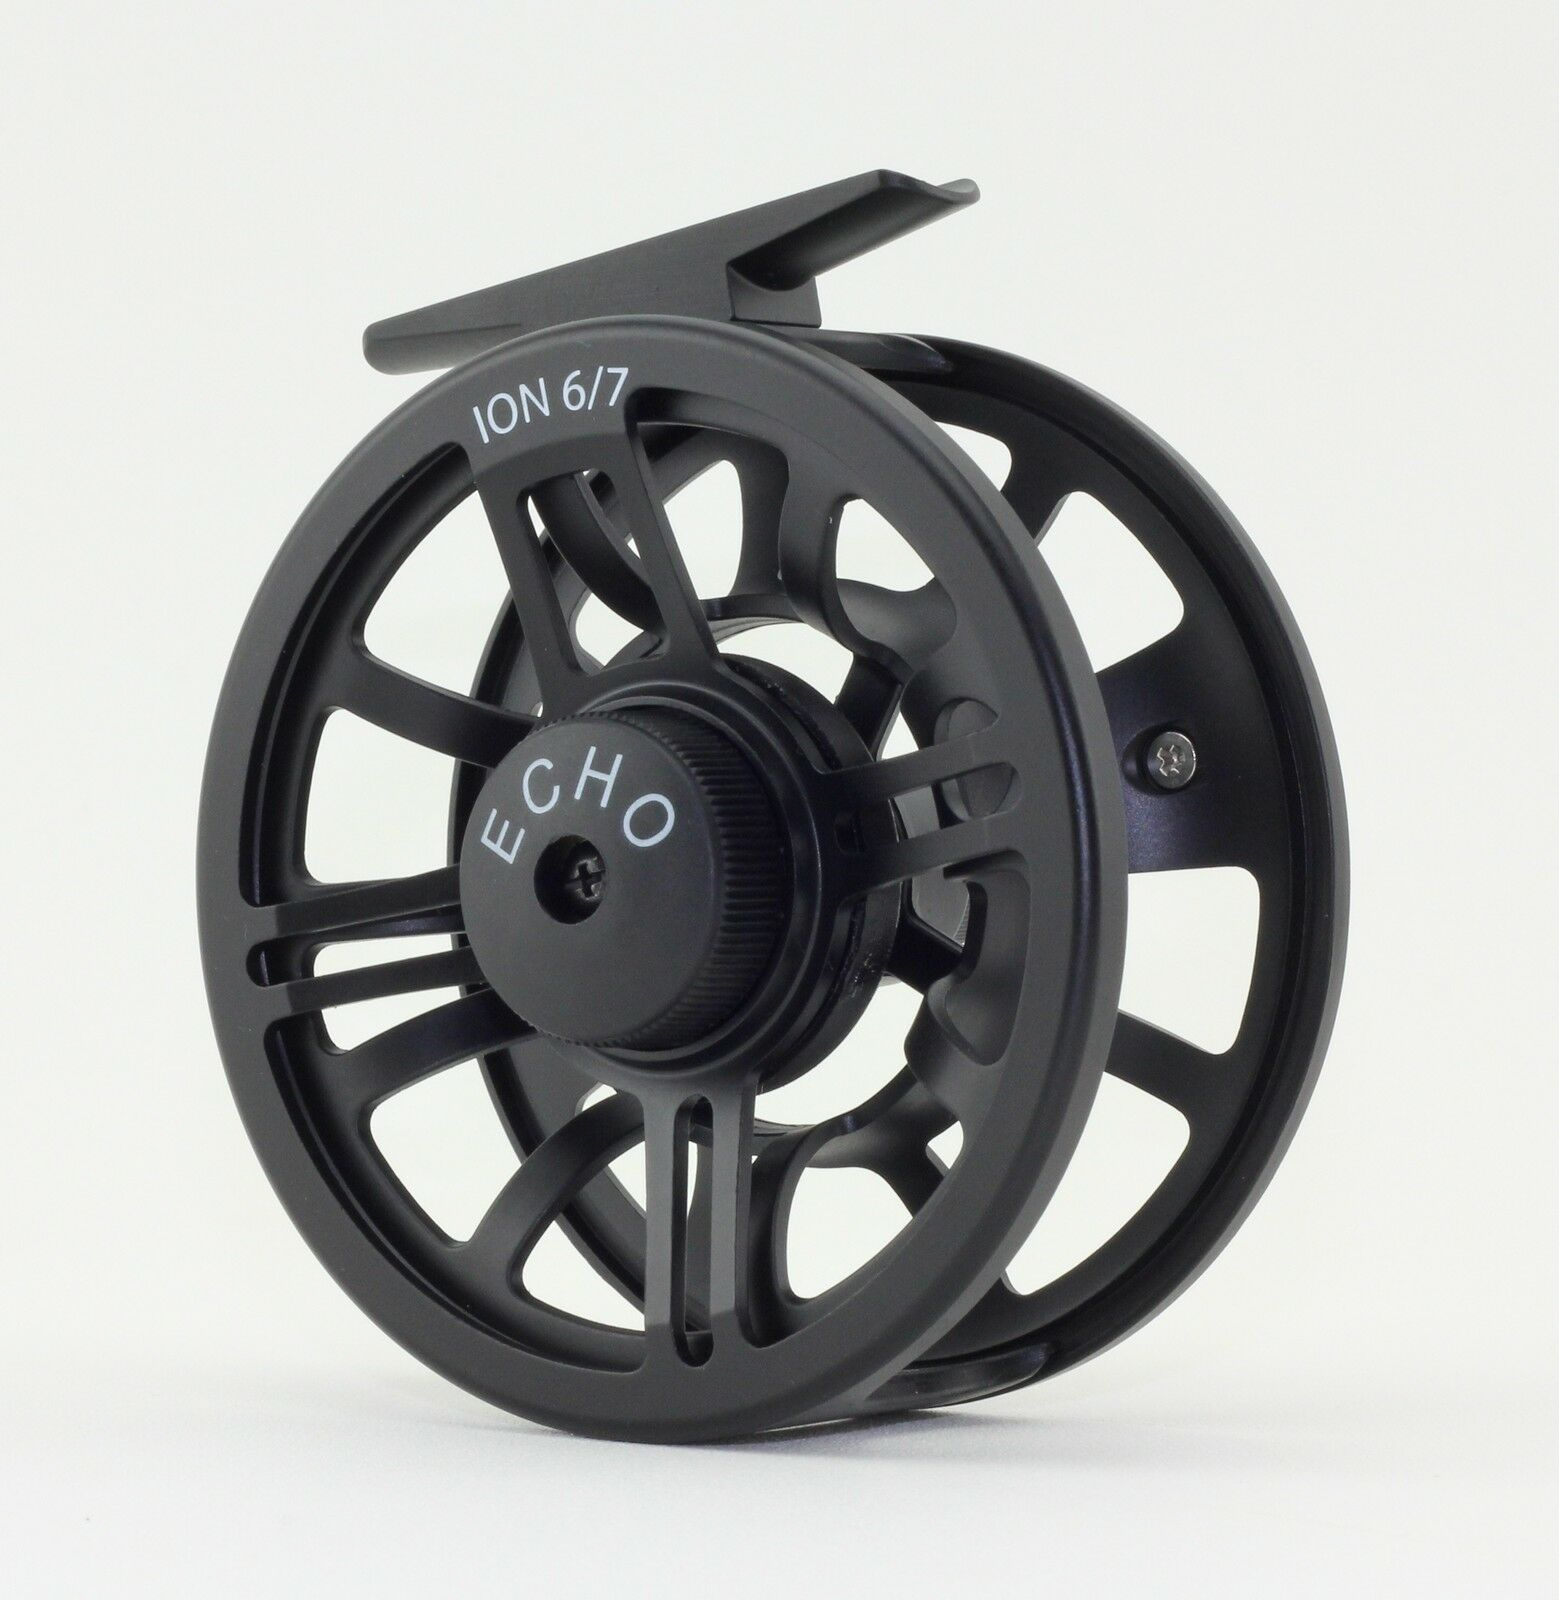 Echo Ion 6/7 Fly Reel, New